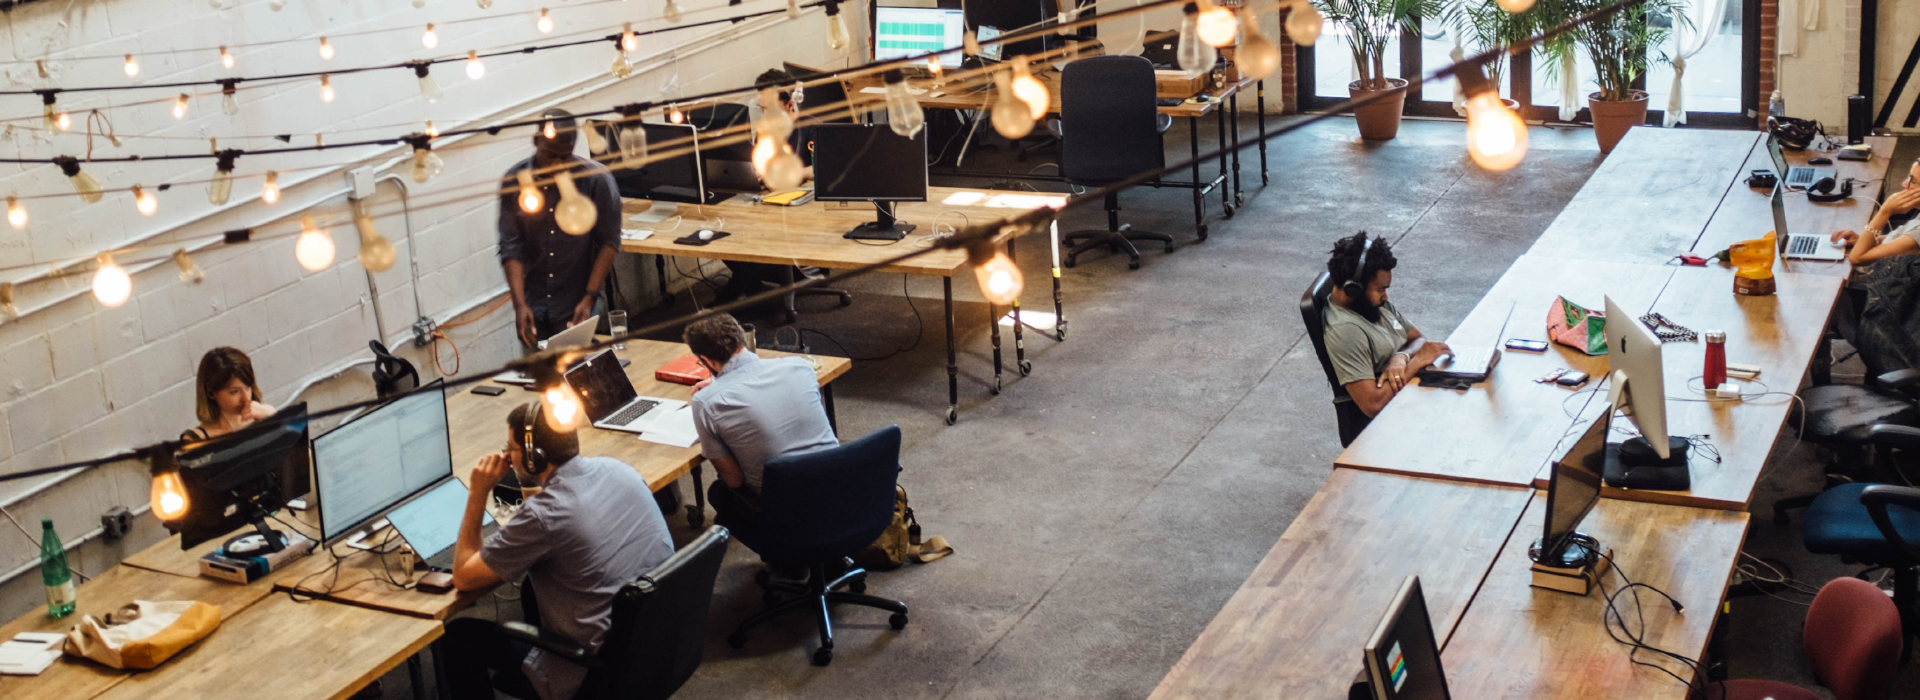 Coworking Space with wooden tables and people working